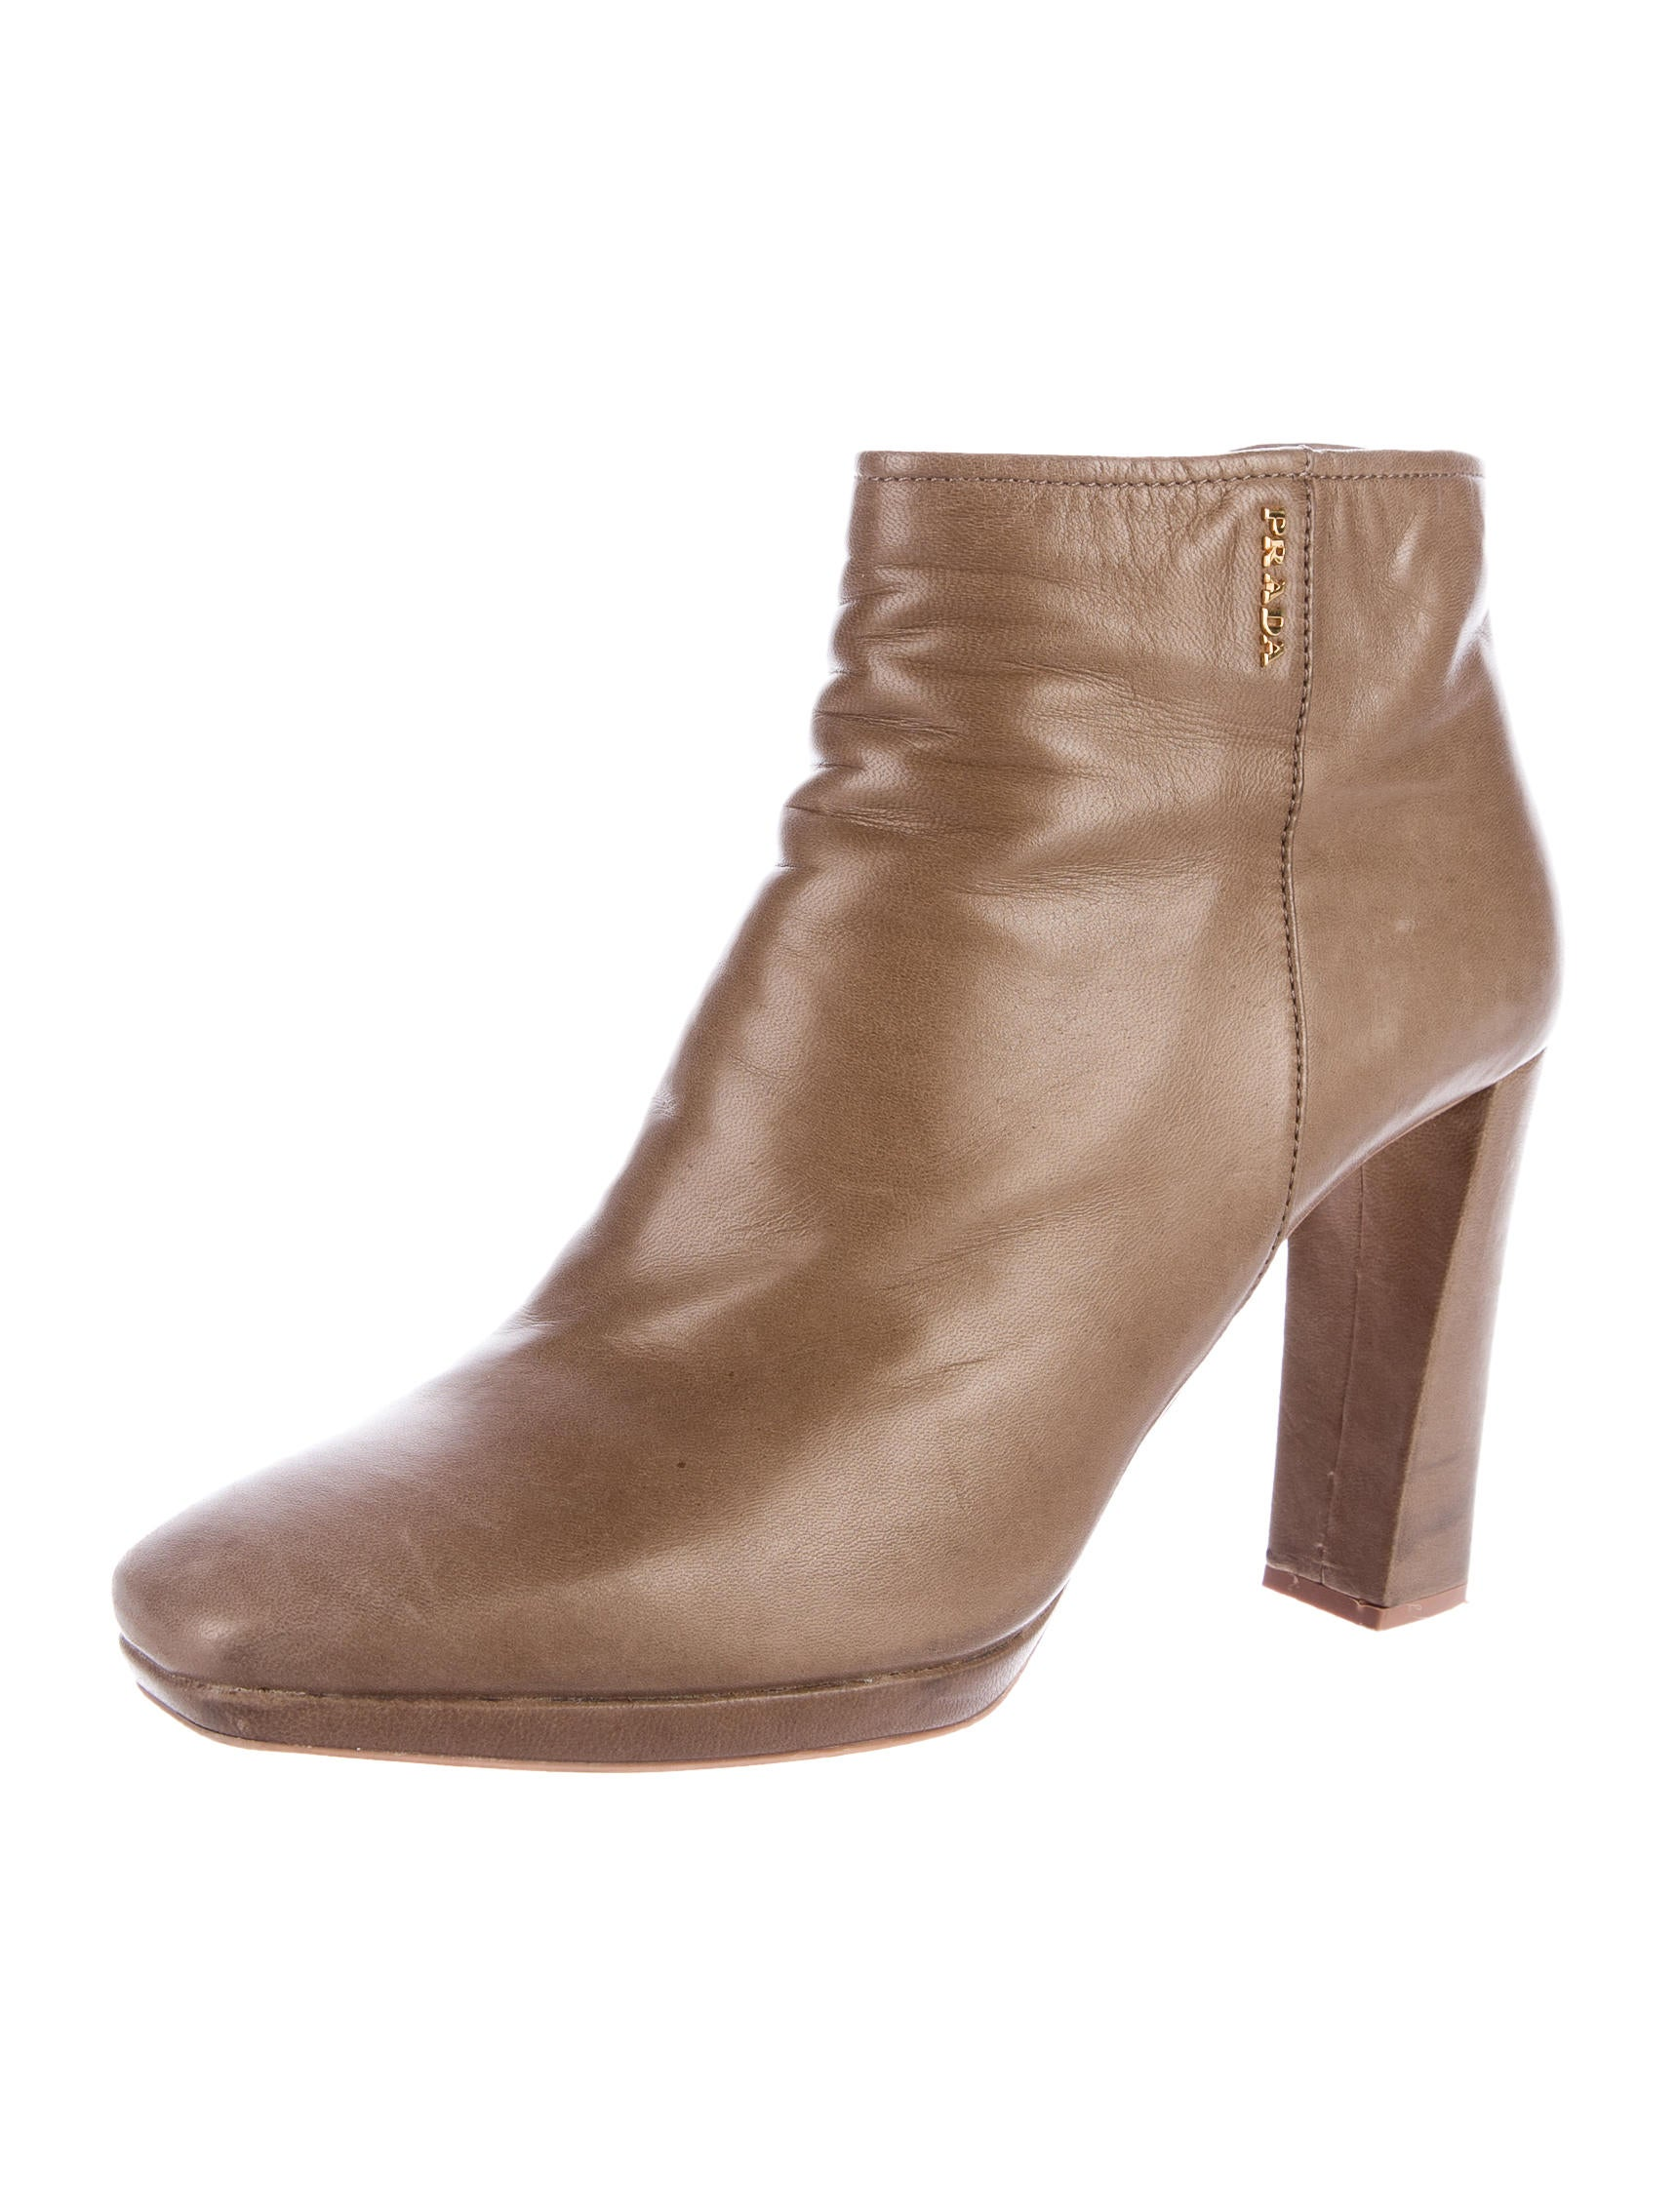 prada sport leather square toe ankle boots shoes